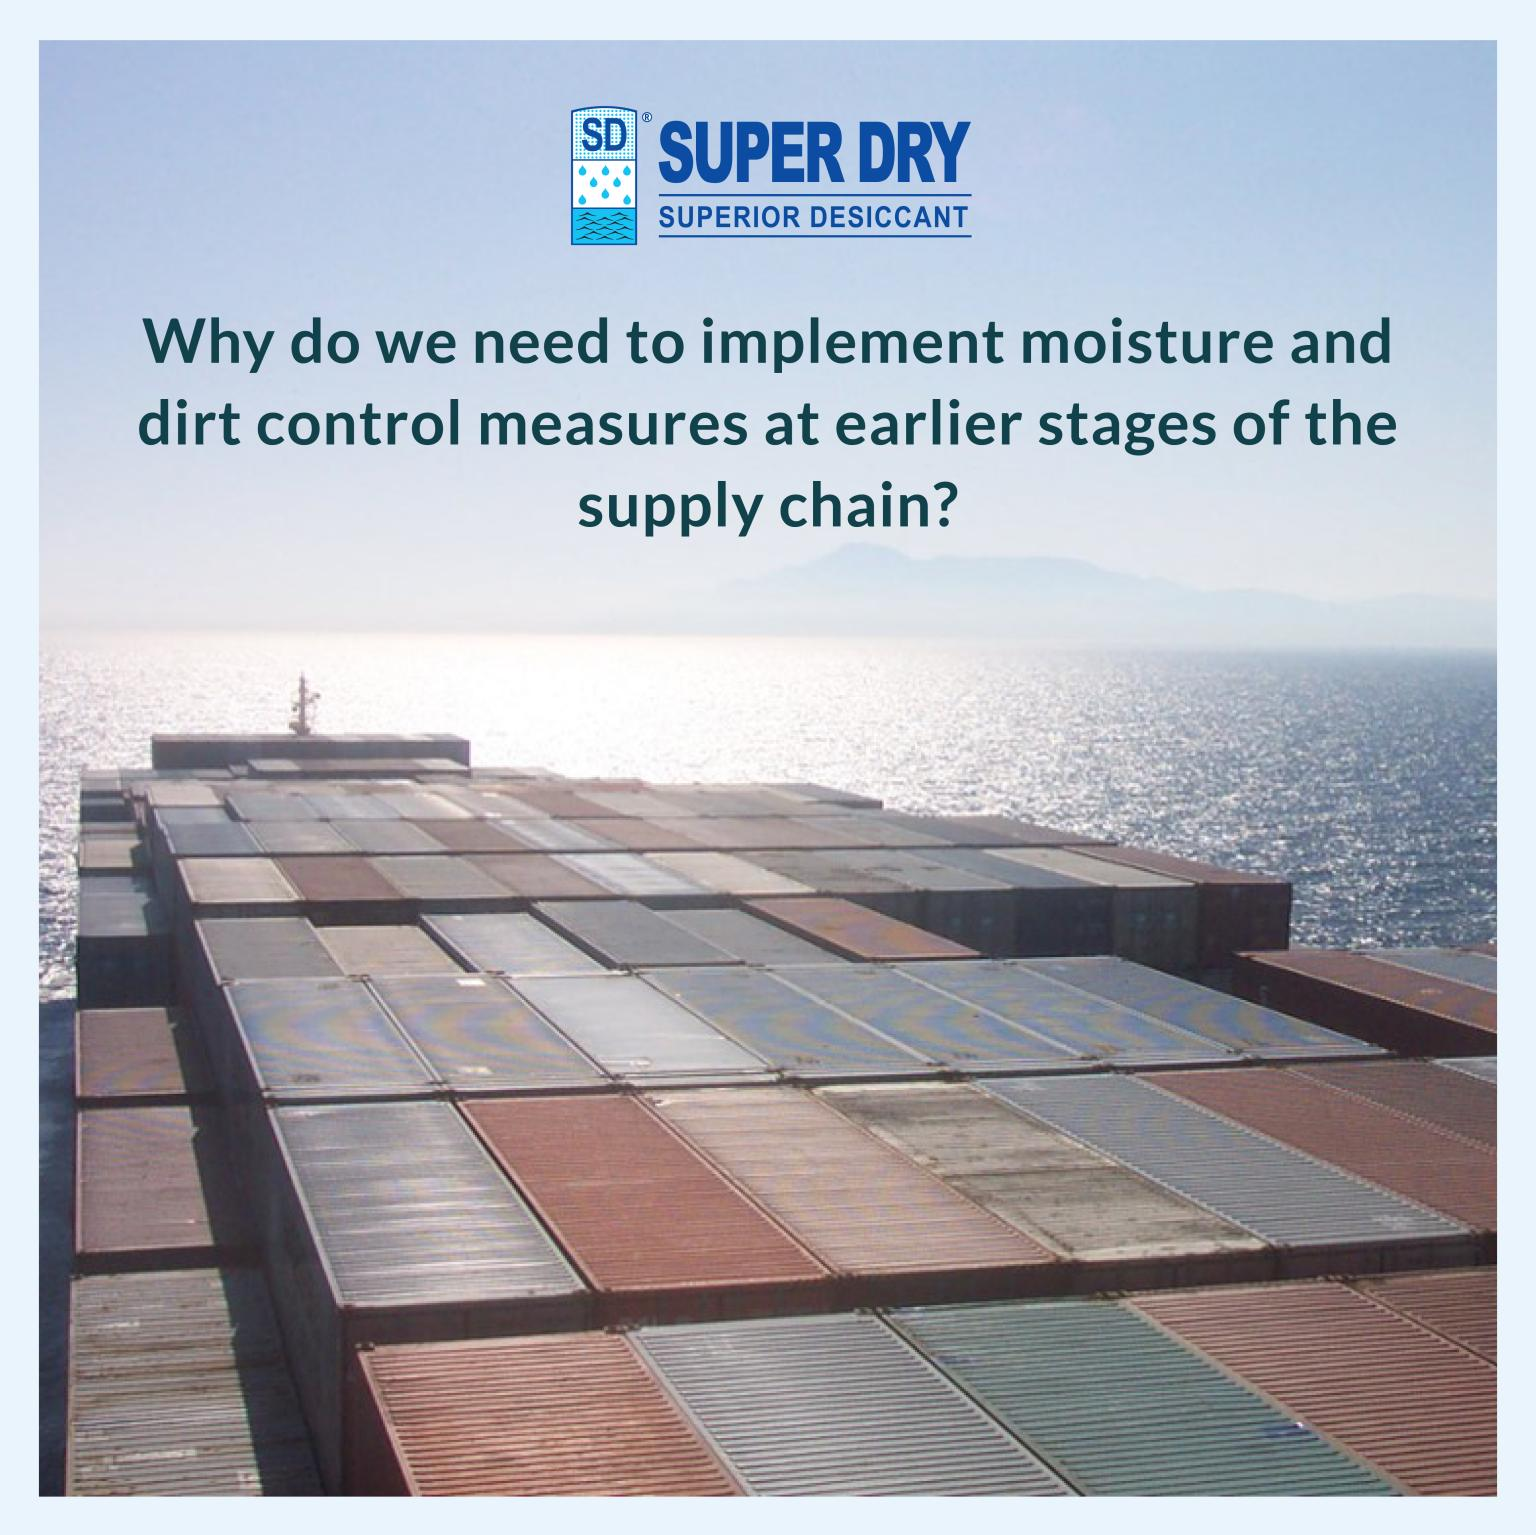 #Why do we need to implement moisture and dirt control measures at earlier stages of the supply chain?